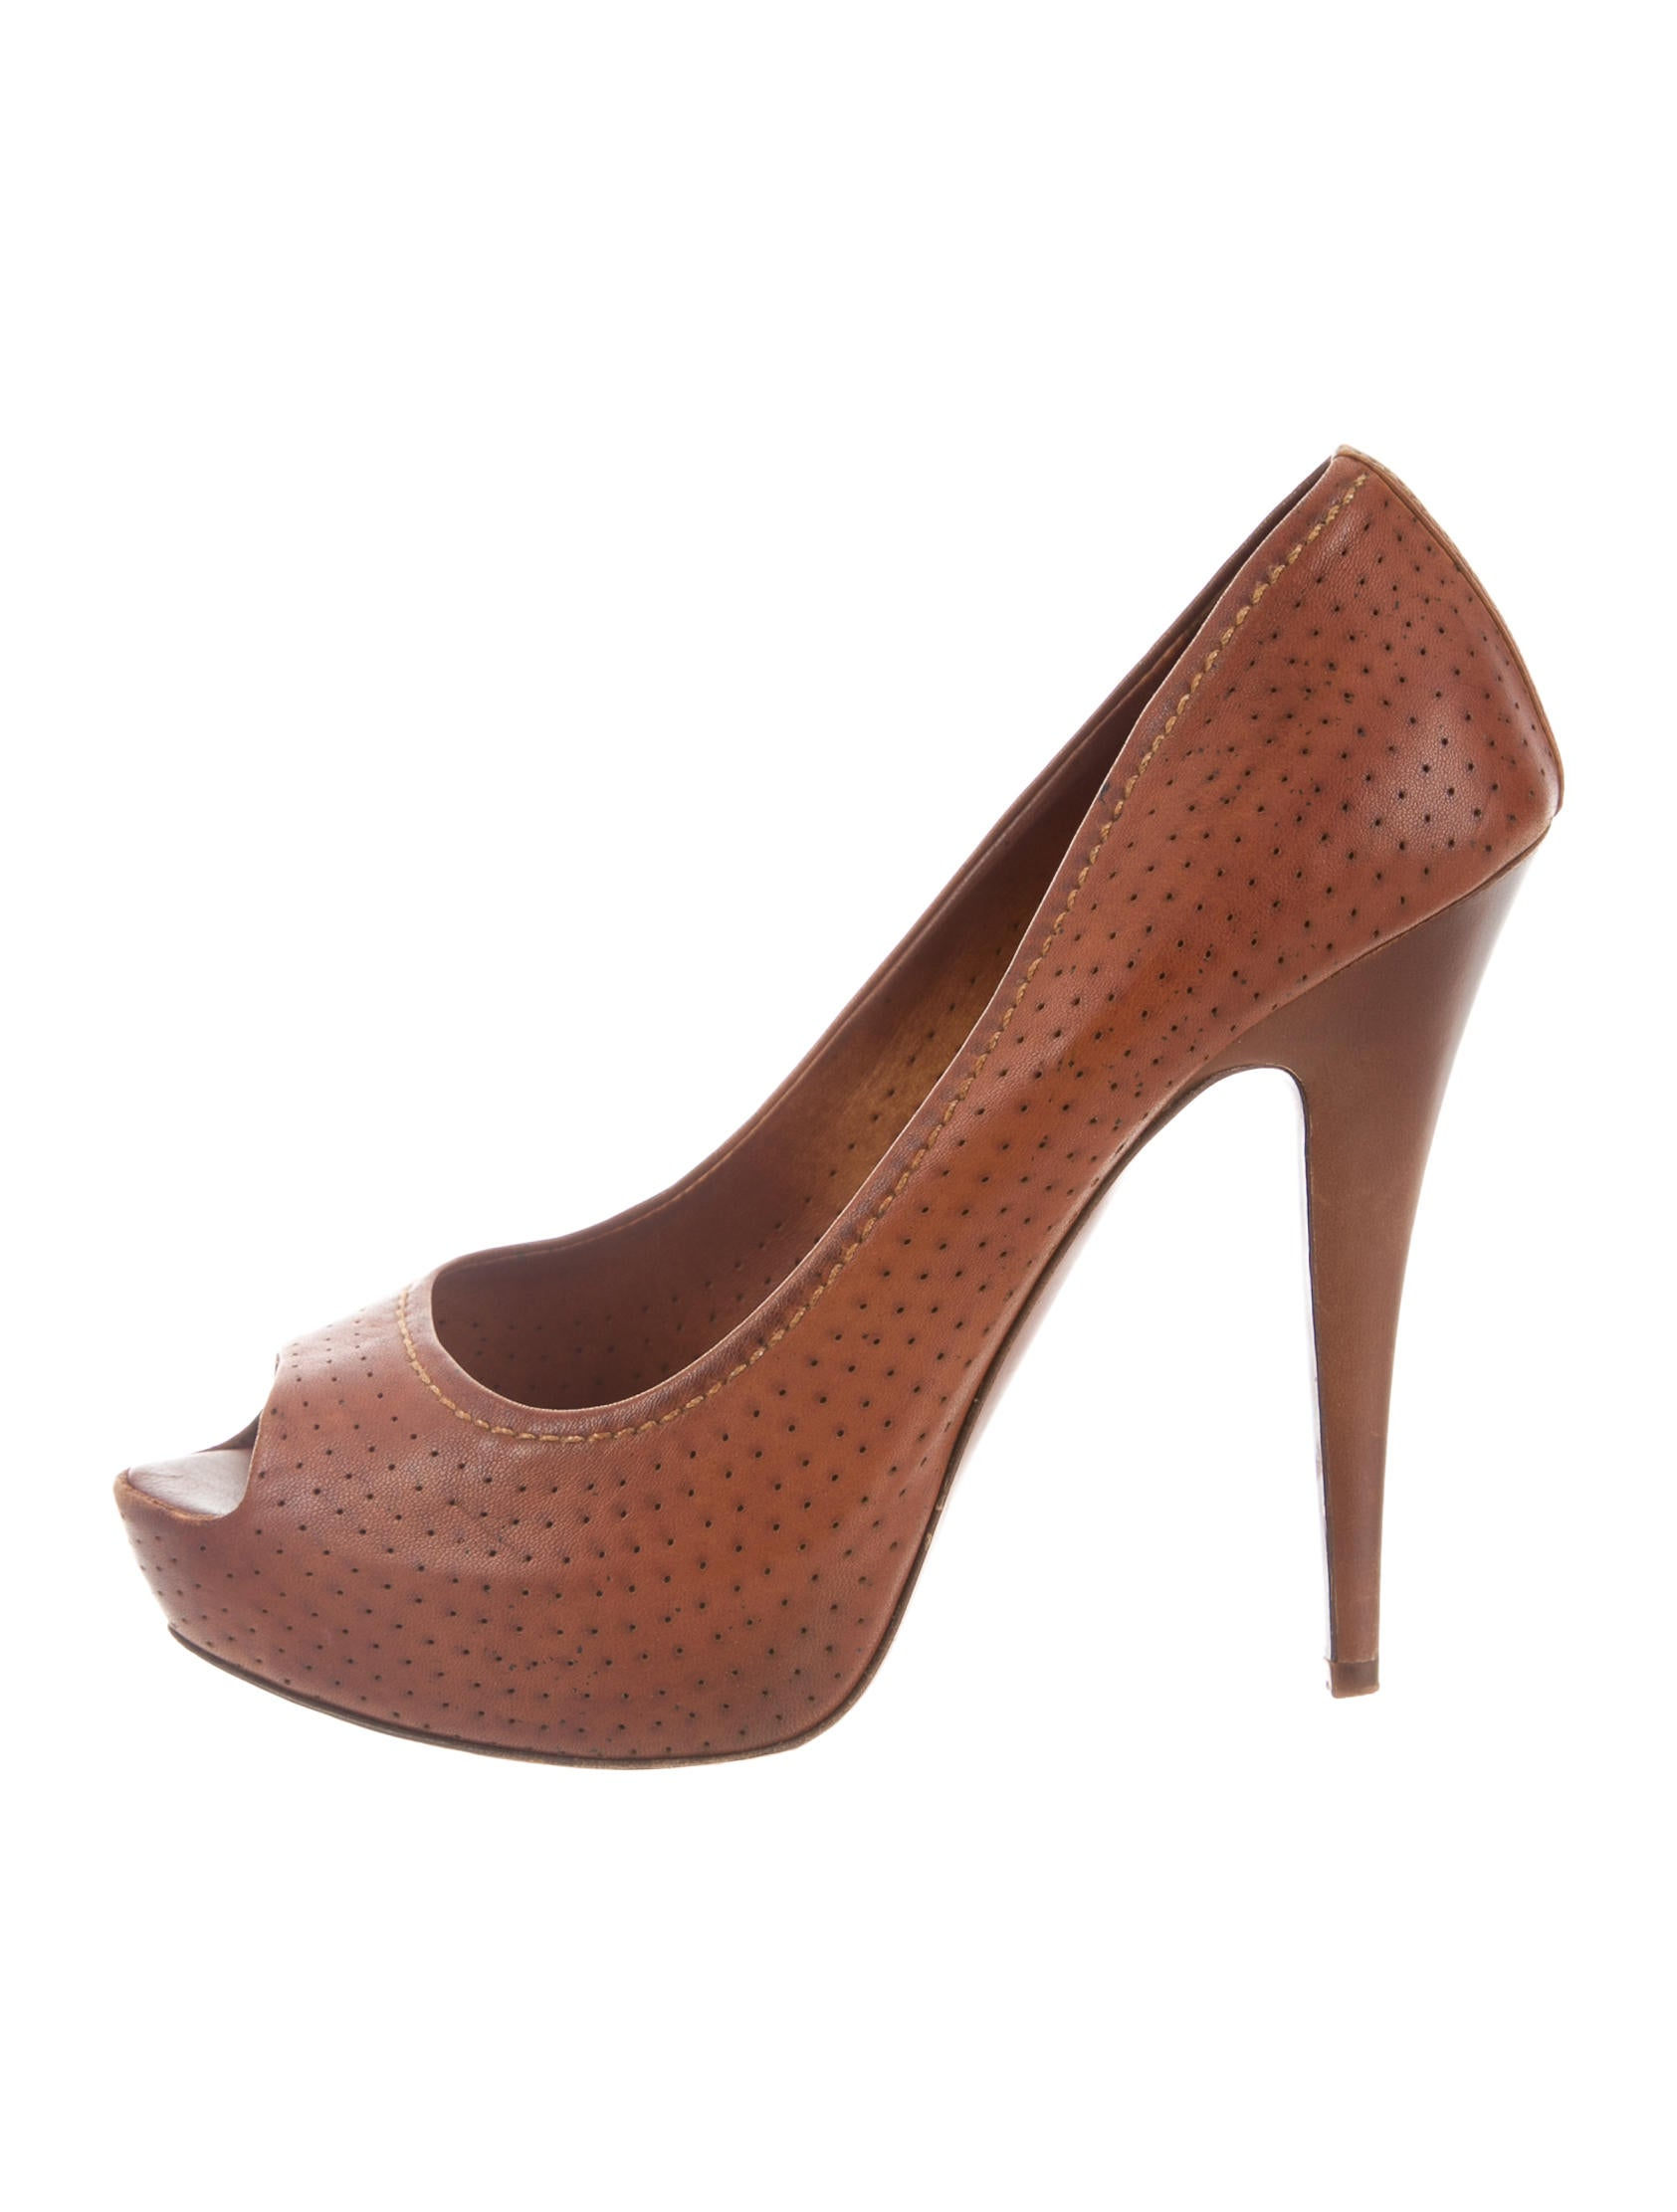 free shipping low price Miu Miu Perforated Peep-Toe Pumps pick a best online discount browse discount free shipping discount lowest price JaxSgVF